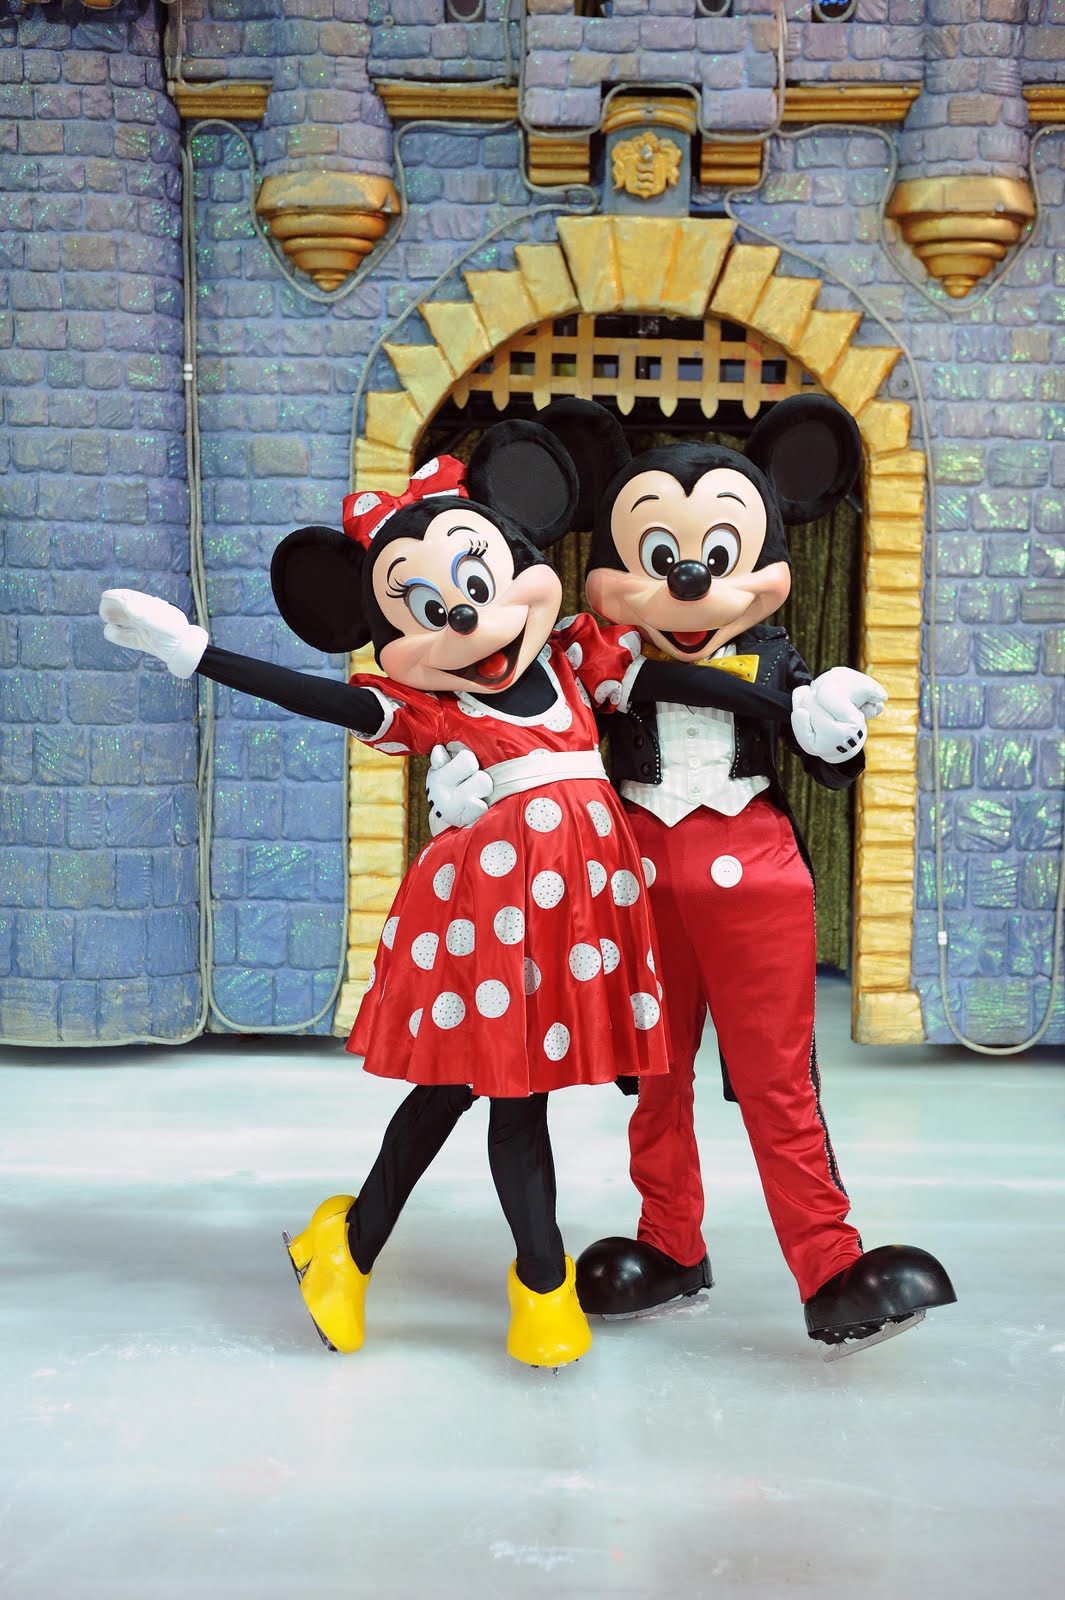 Mickey and Minnie The new FDA approved antidepressant labels confirm that the risks with ssri ...